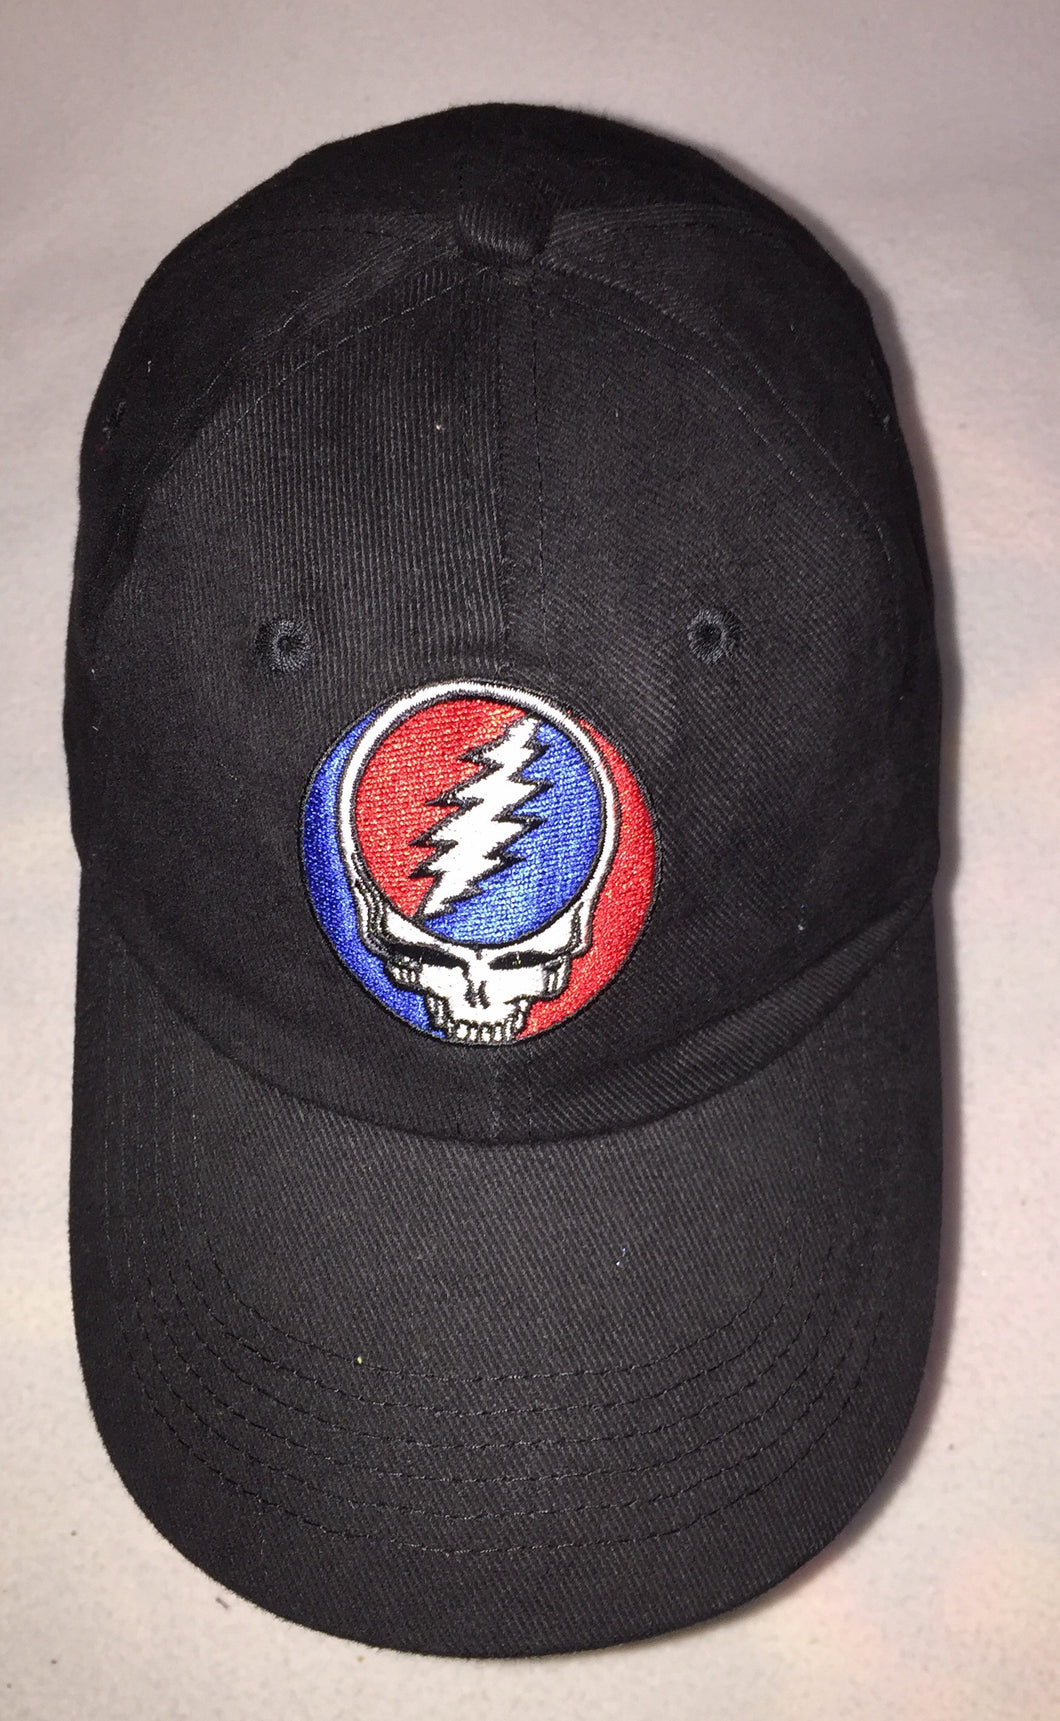 Steal Your Face on black cap.  Caps are adjustable and roomier than many previous GD caps